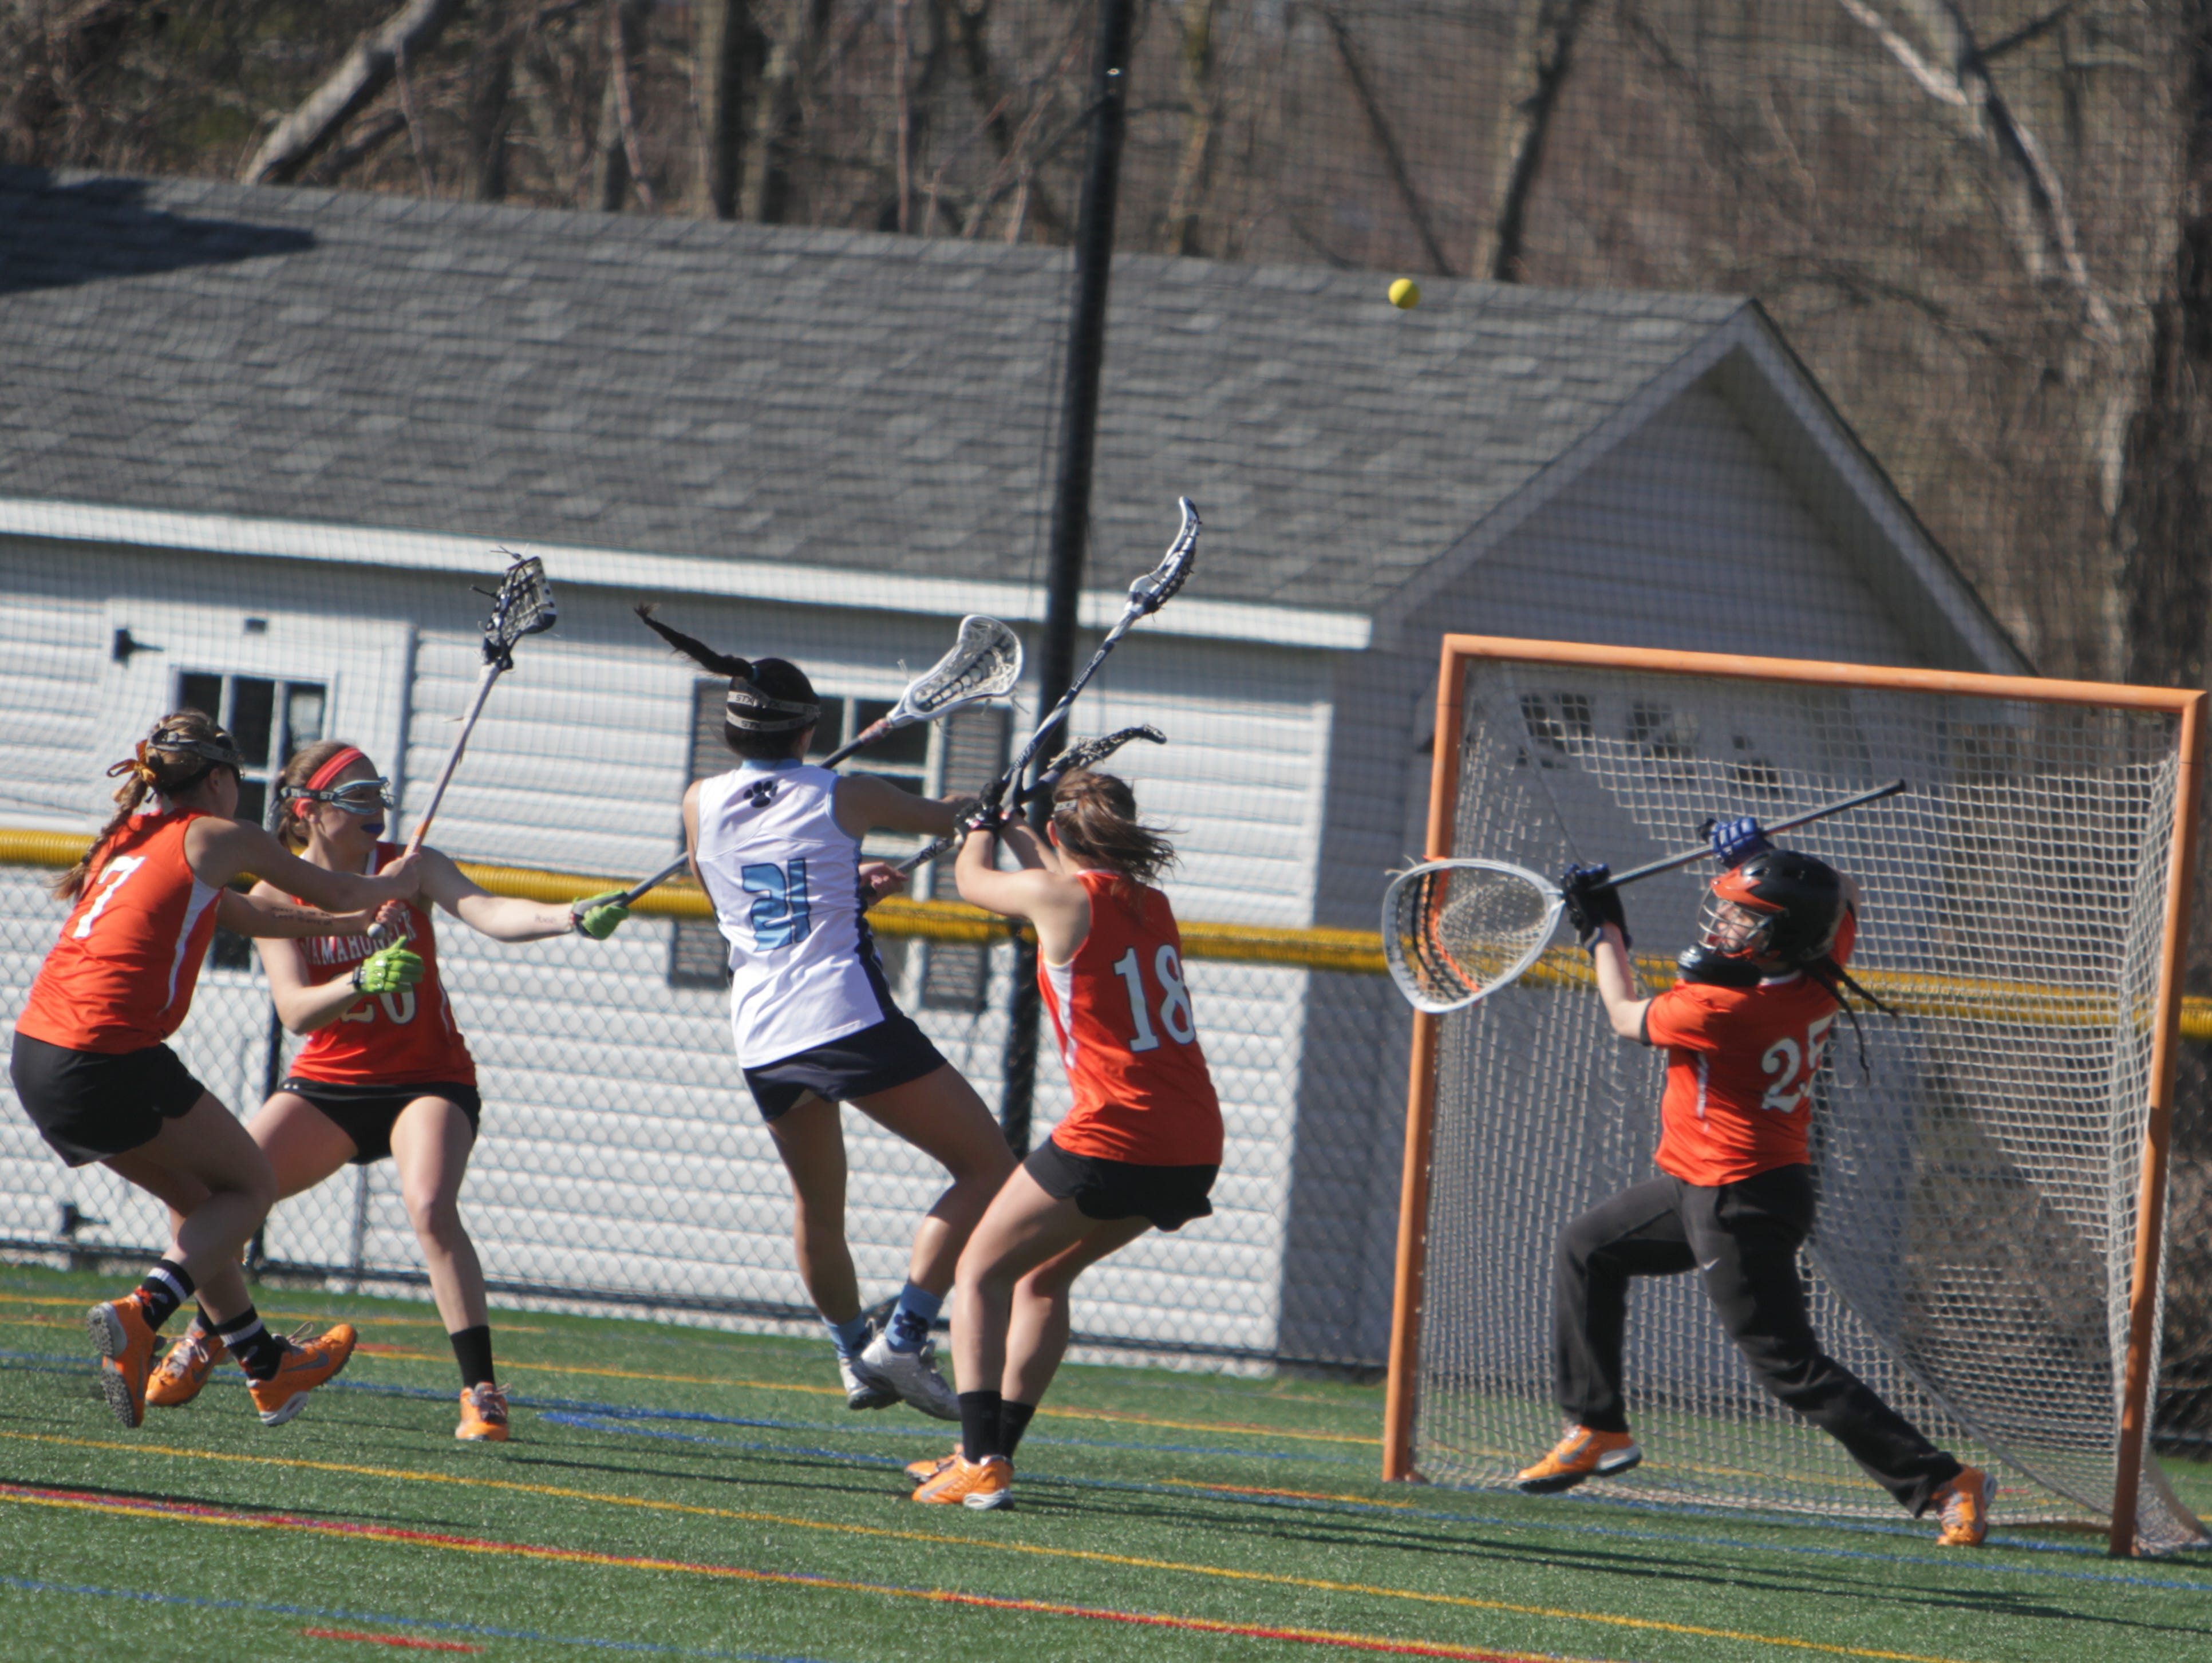 Ursuline's Julianna Sullivan (white) rips a shot attempt over Mamaroneck goalie Talia Land during a Section 1 girls lacrosse game between Ursuline and Mamaroneck at the Ursuline School on Thursday, April 14th, 2016. Mamaroneck won 12-10.